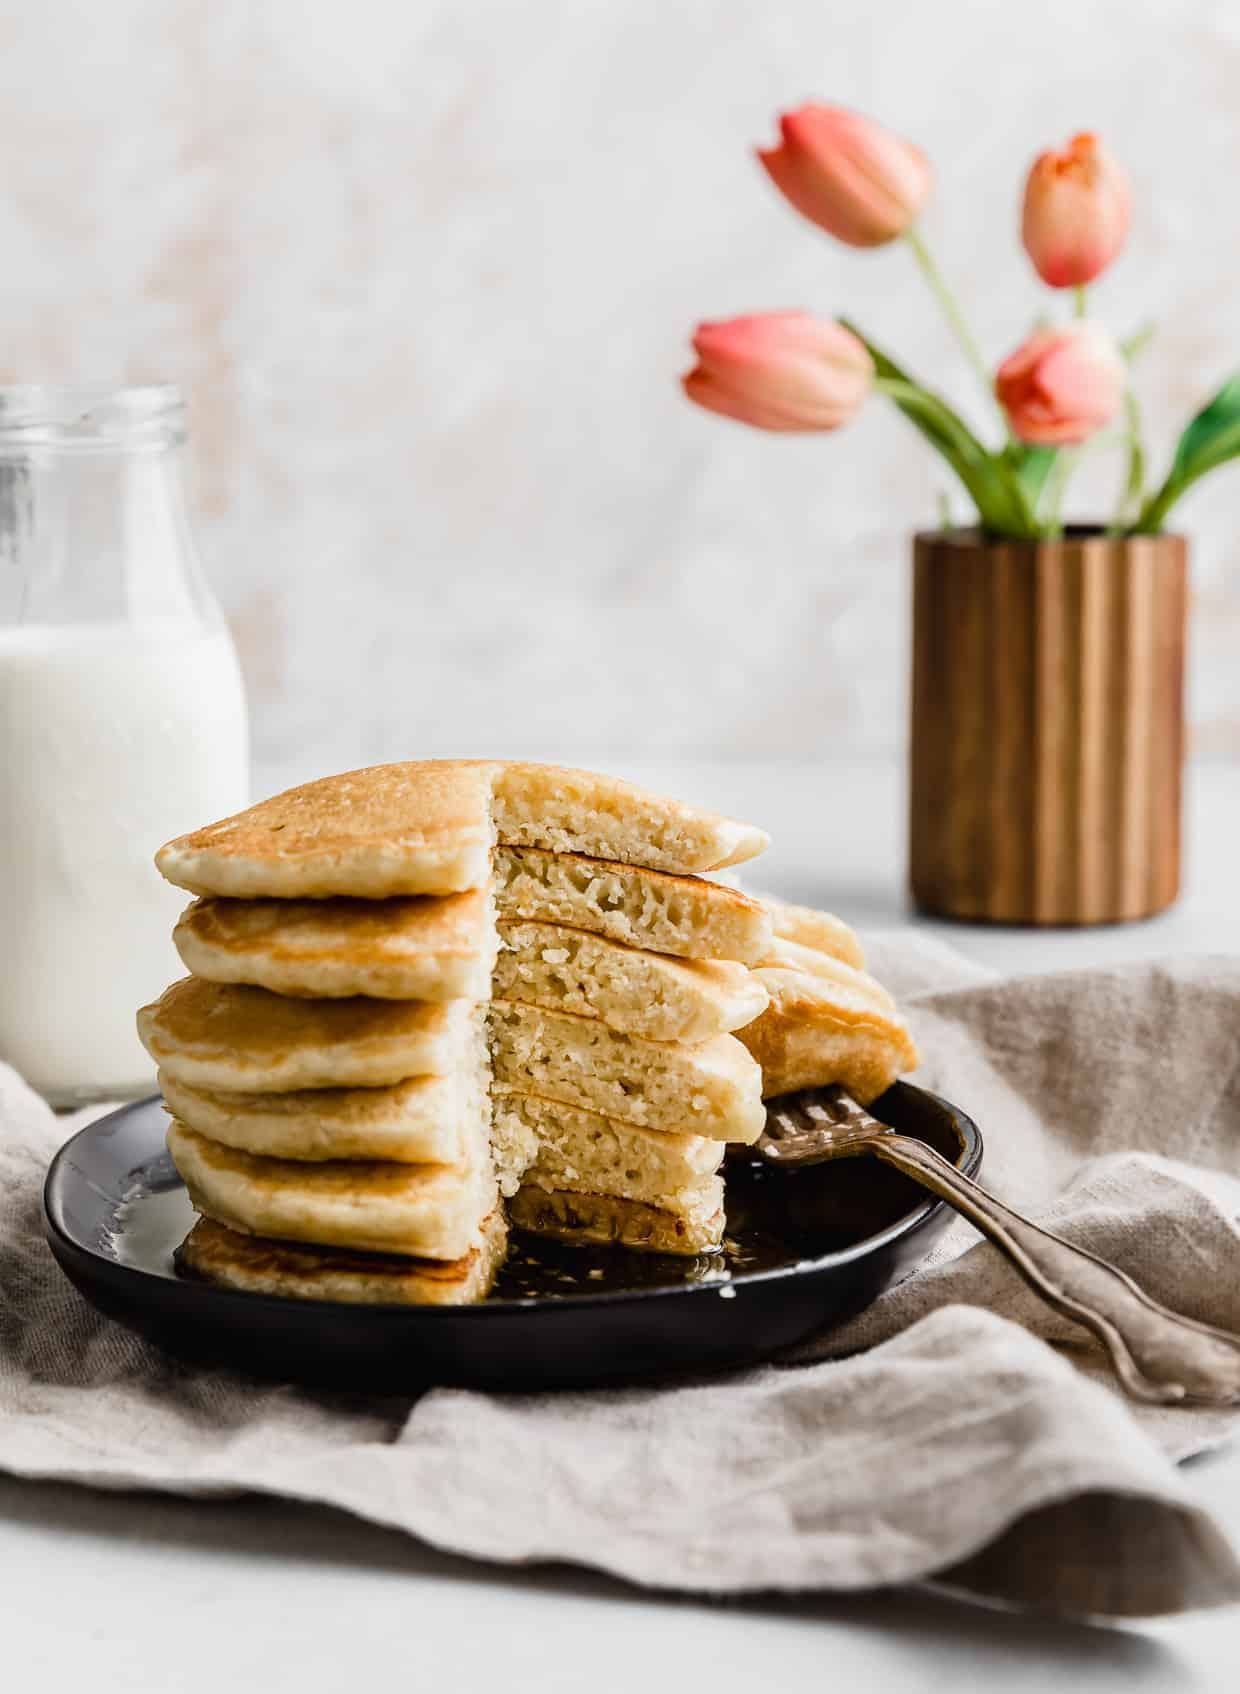 Fluffy Almond Milk Pancakes on a black plate with a wedge of pancake cut out of the stack.